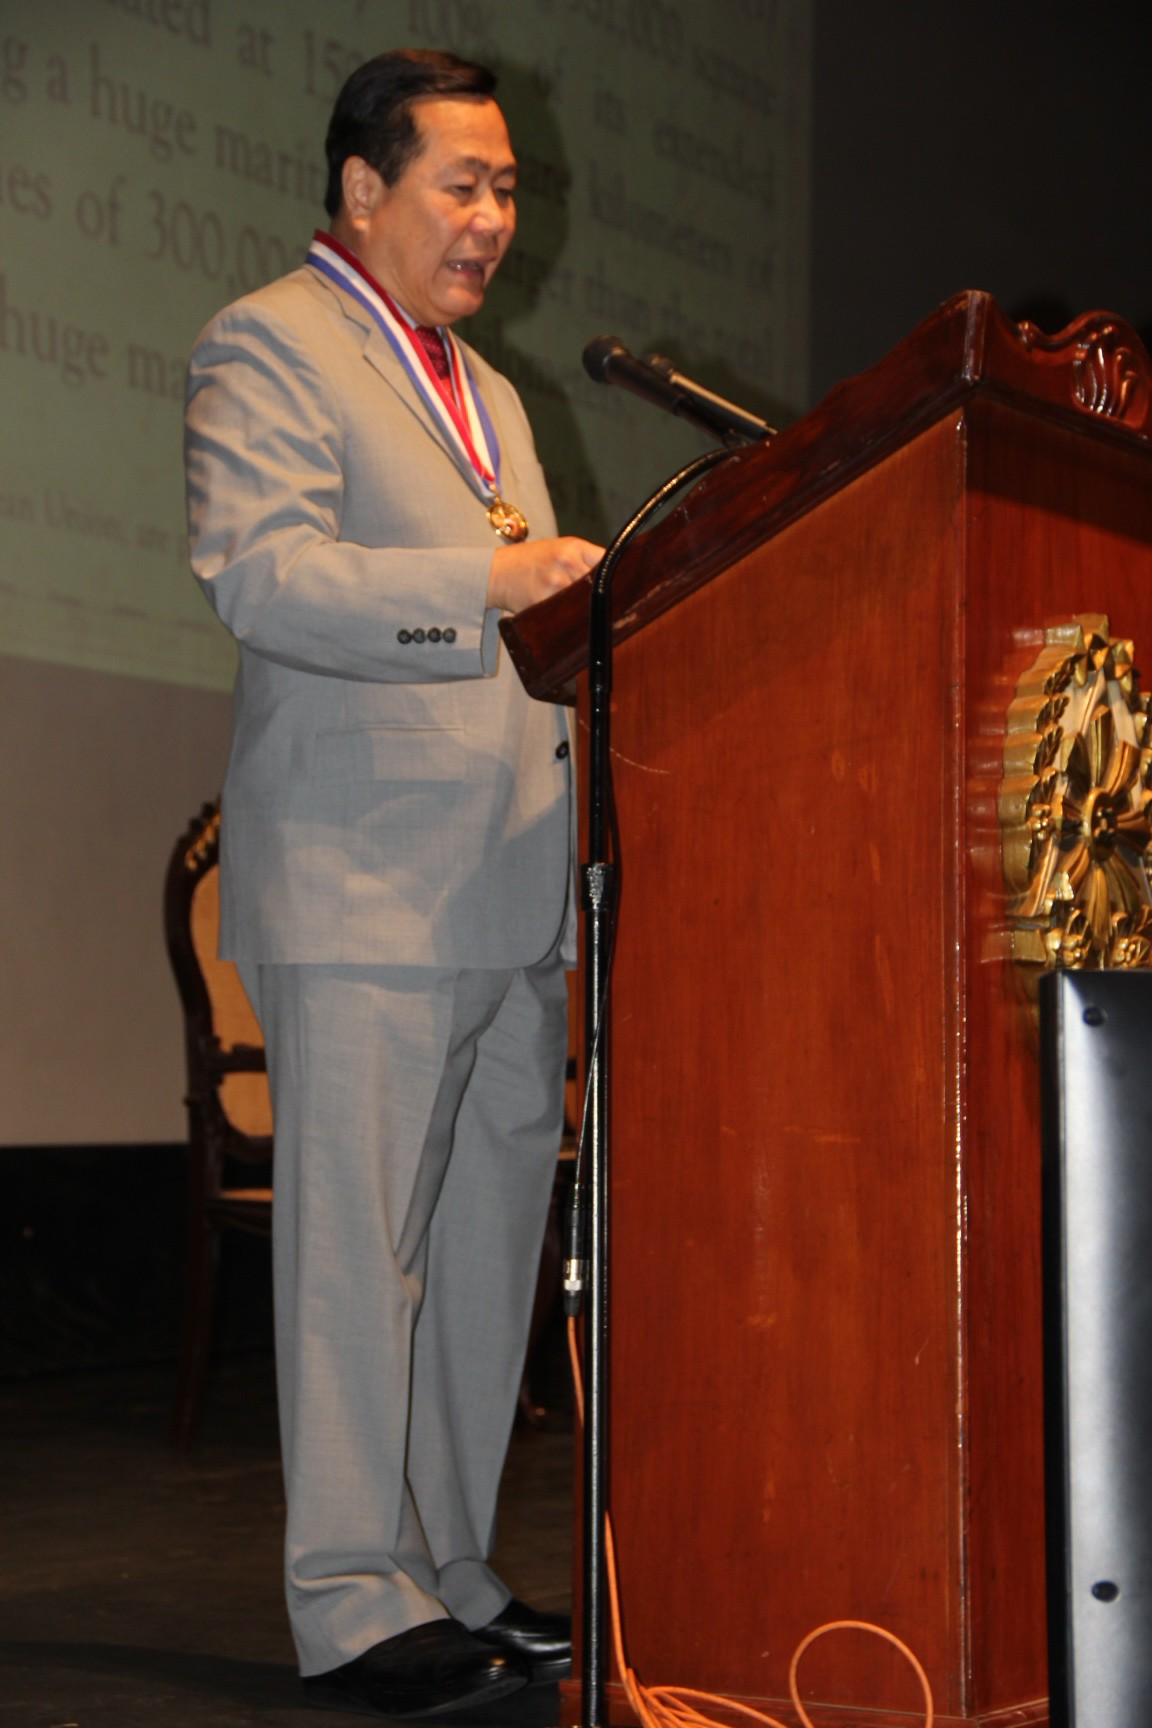 Lecture delivered by Associate Justice Antonio T. Carpio before the Philippine Military Academy Alumni Association, AFP Theater, Camp General Emilio Aguinaldo, Quezon City, 23 January 2016.